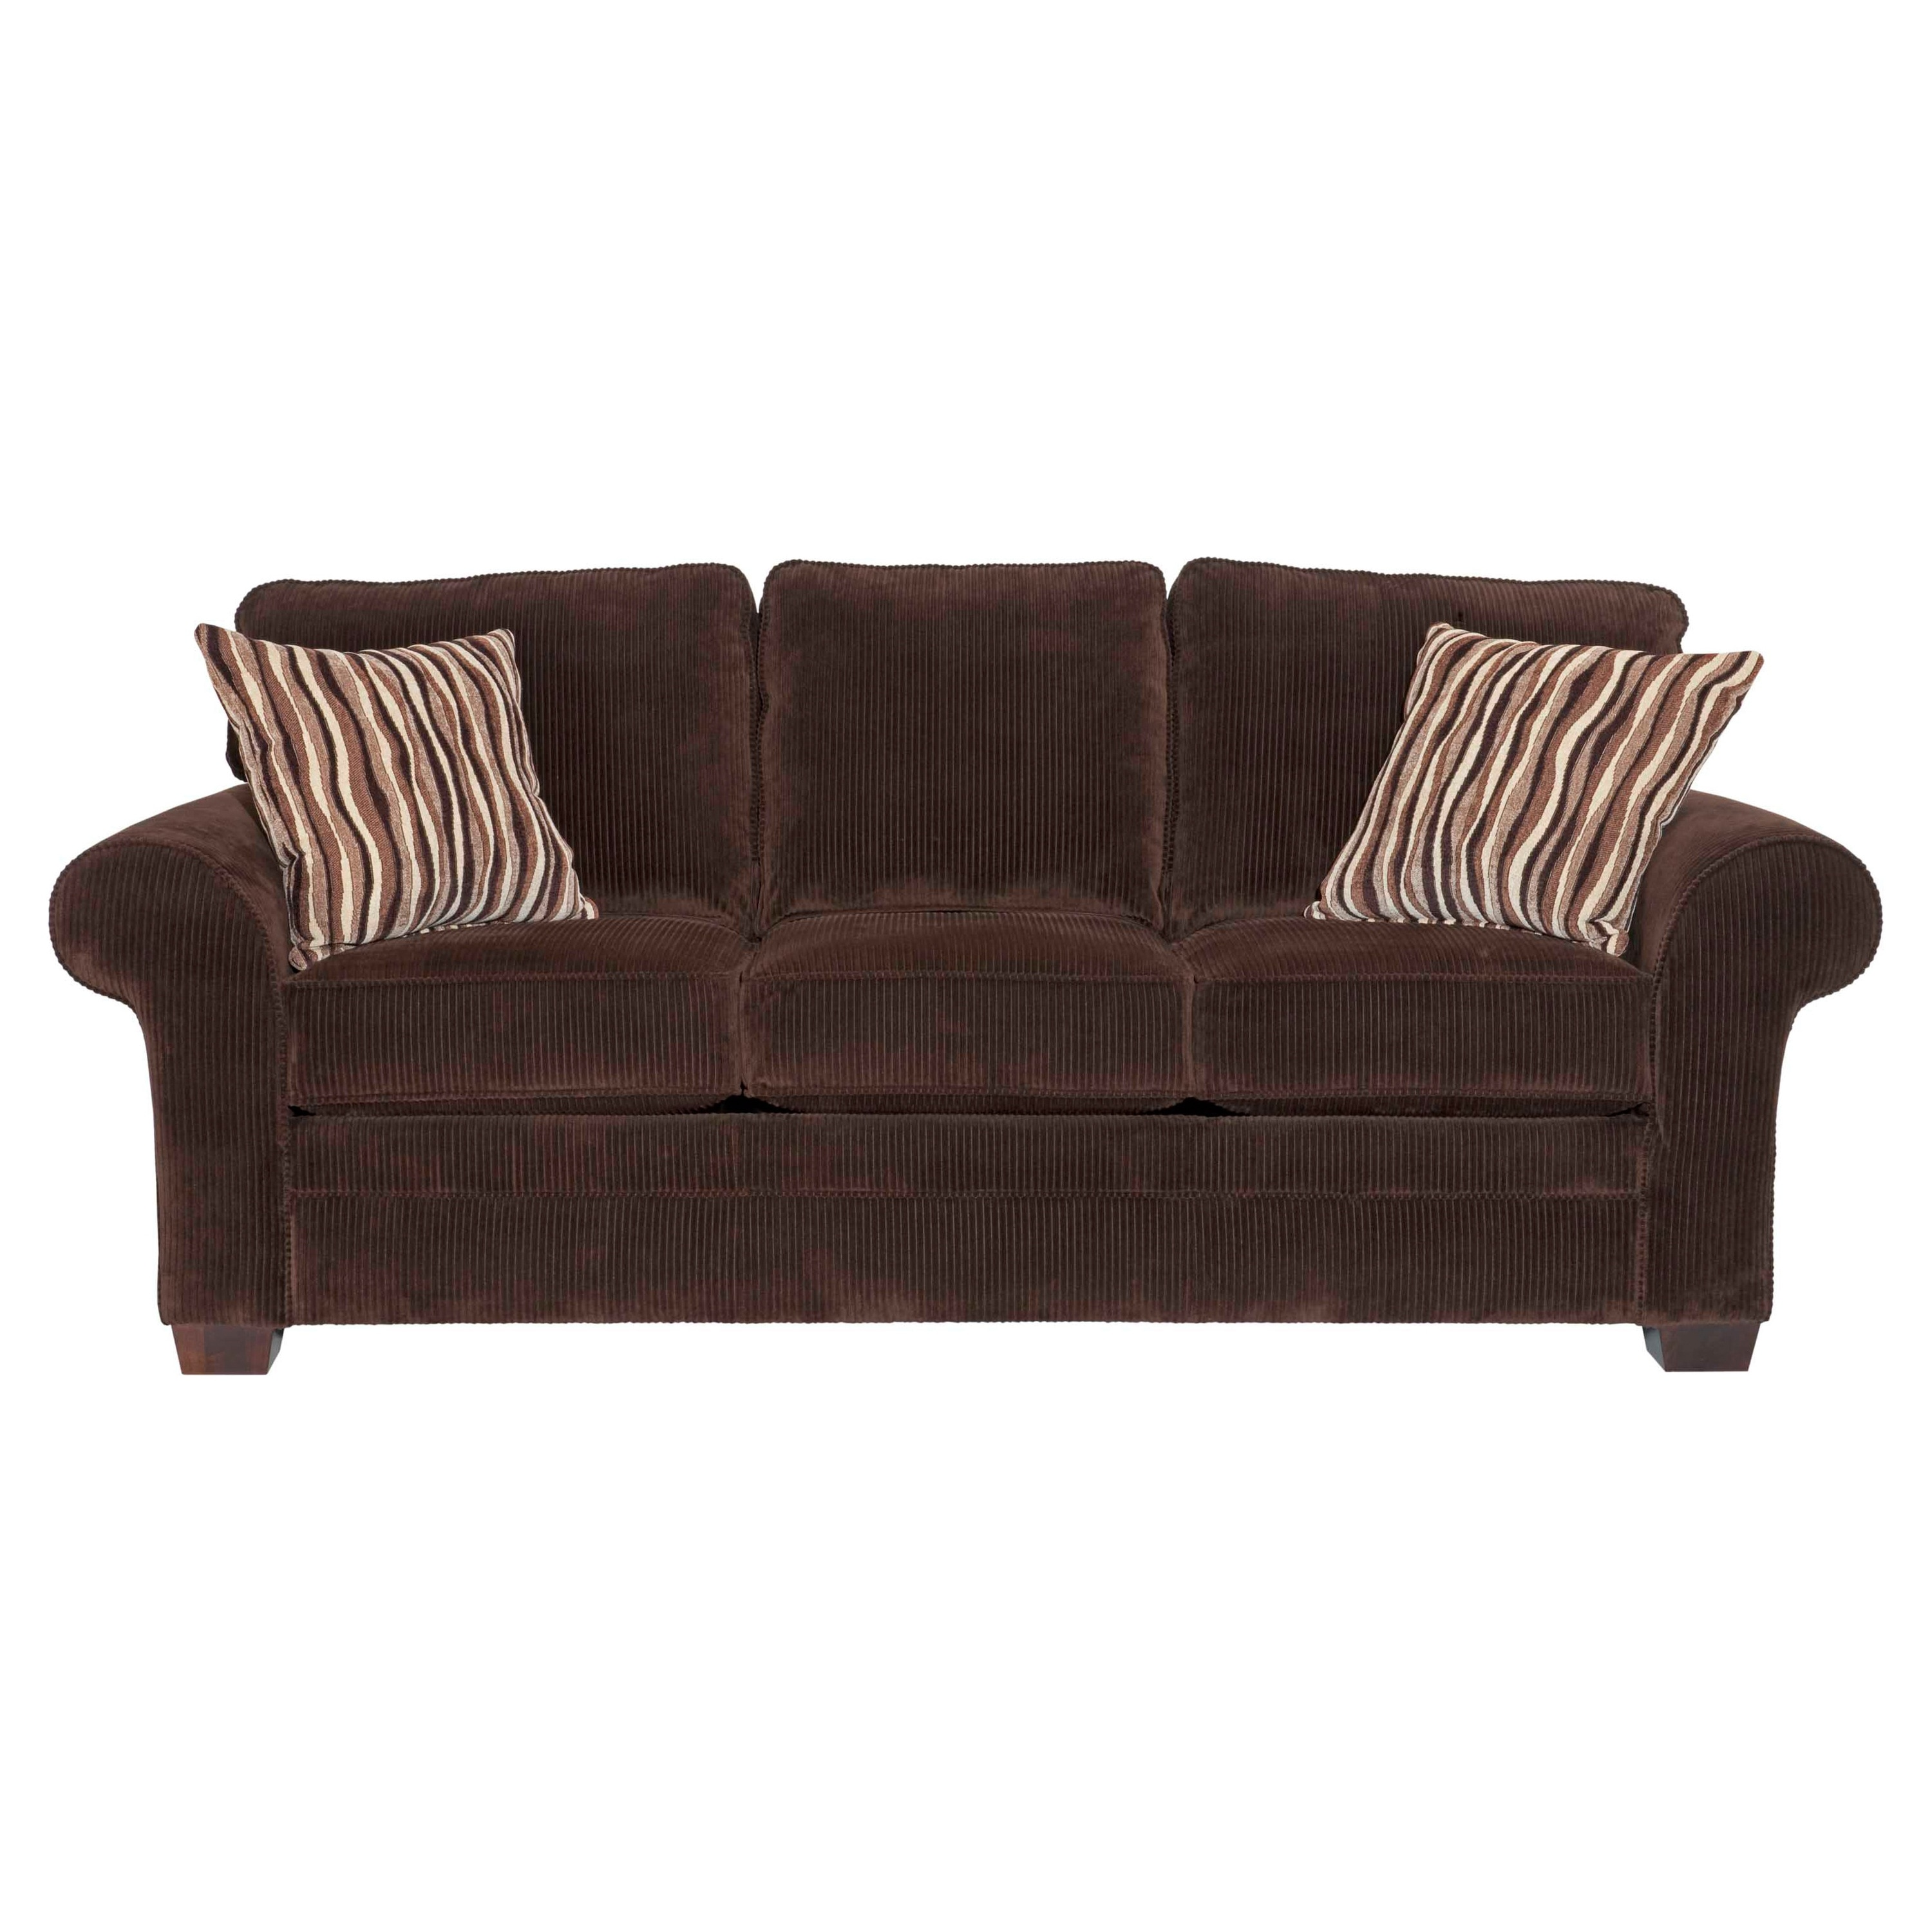 broyhill zoey dark chocolate sofa and accent pillows Traditional Leather Sofas Designer Leather Sofas